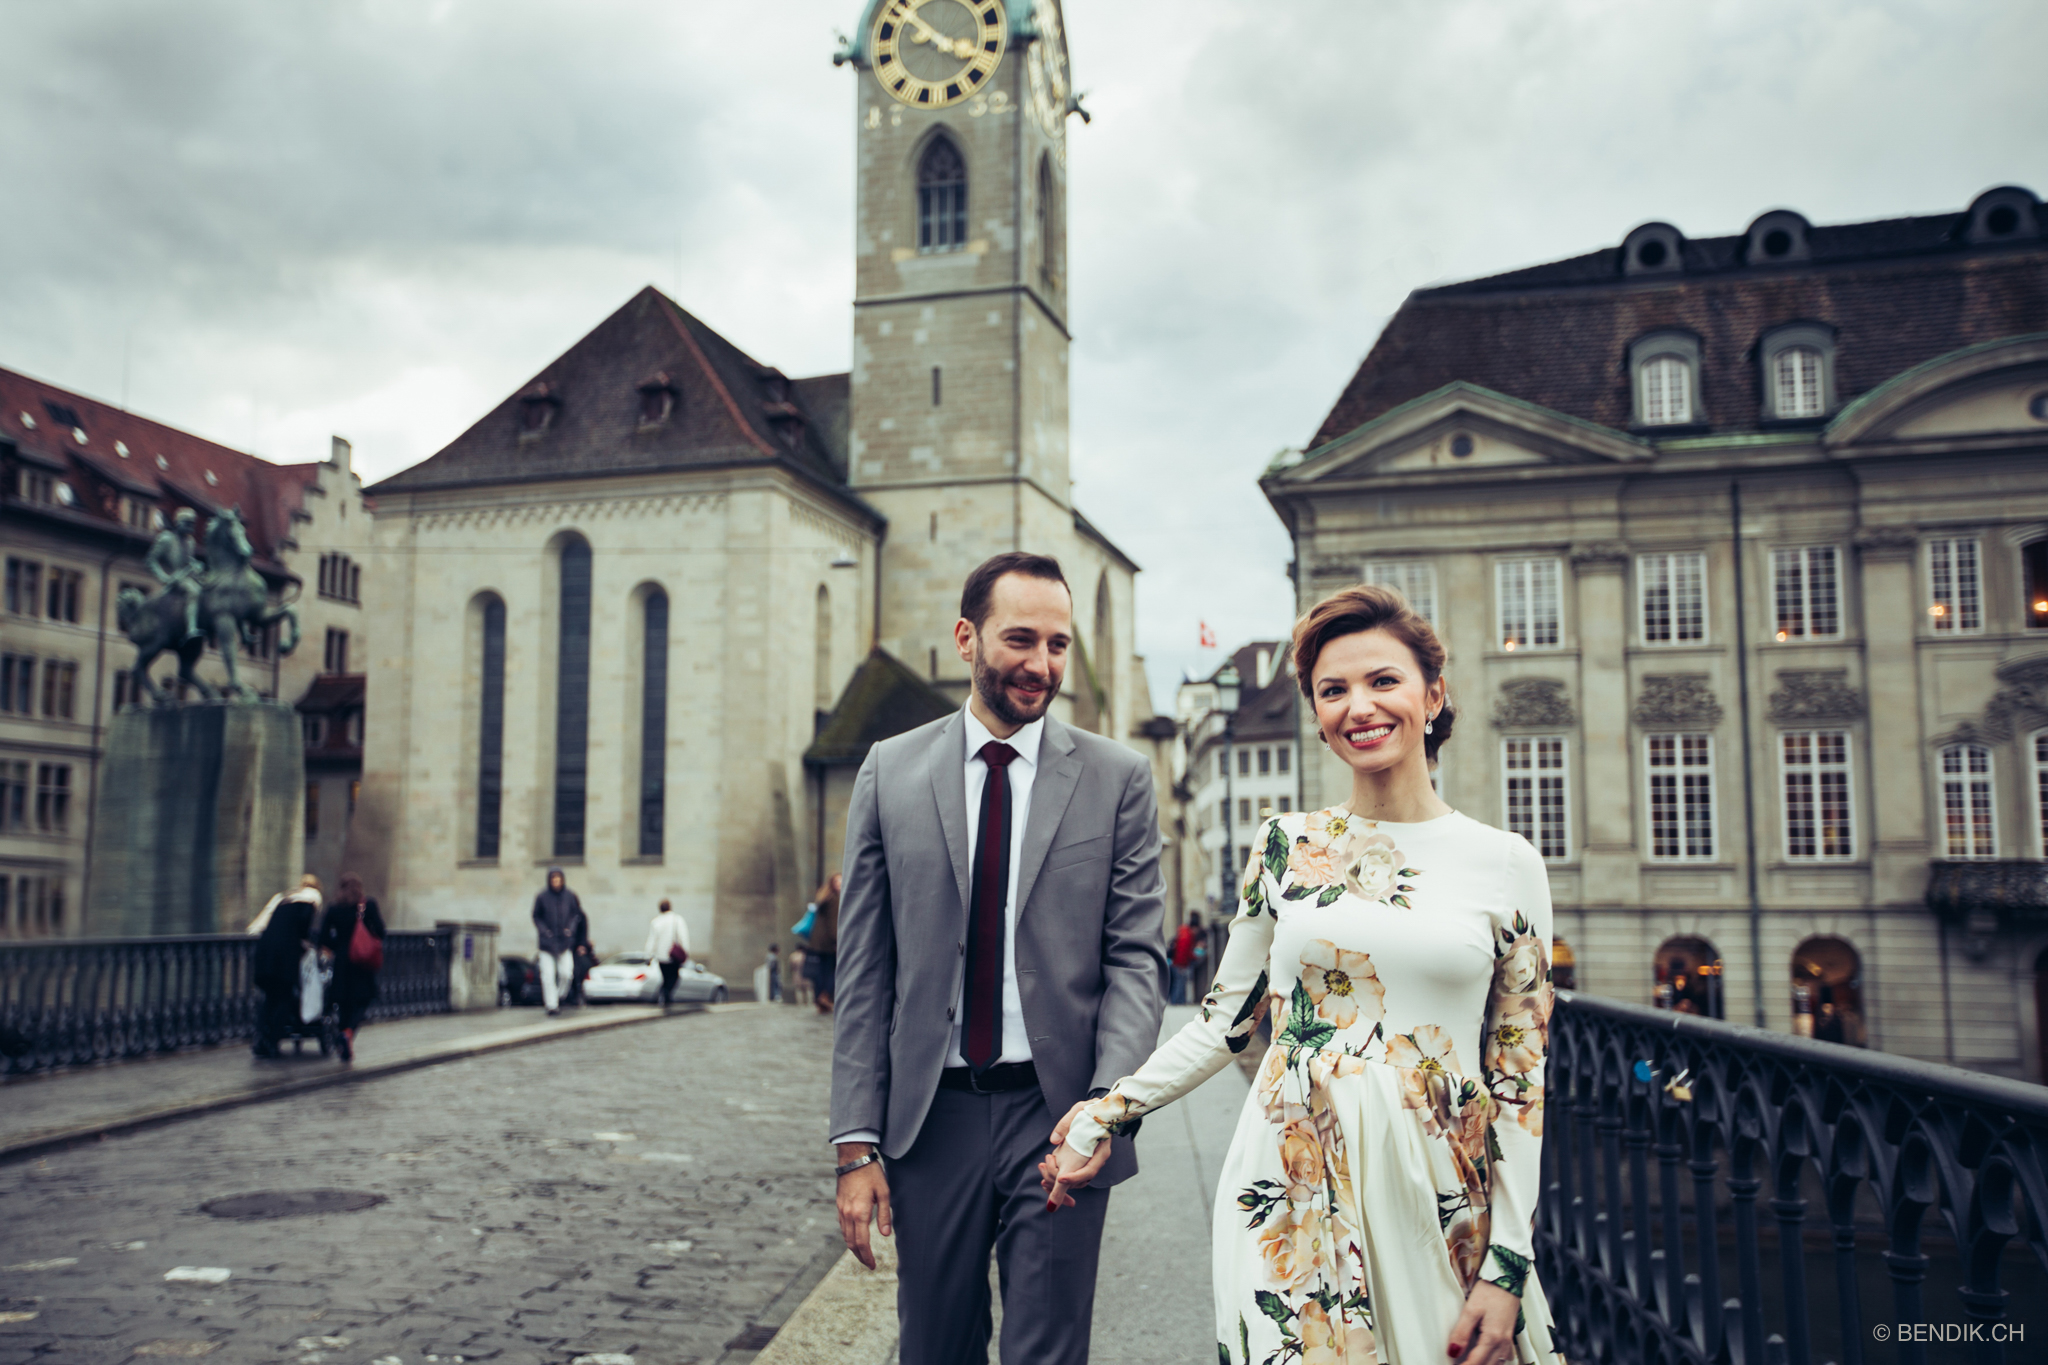 s_wedding_photoshoot_zurich_s_a_20161118_074